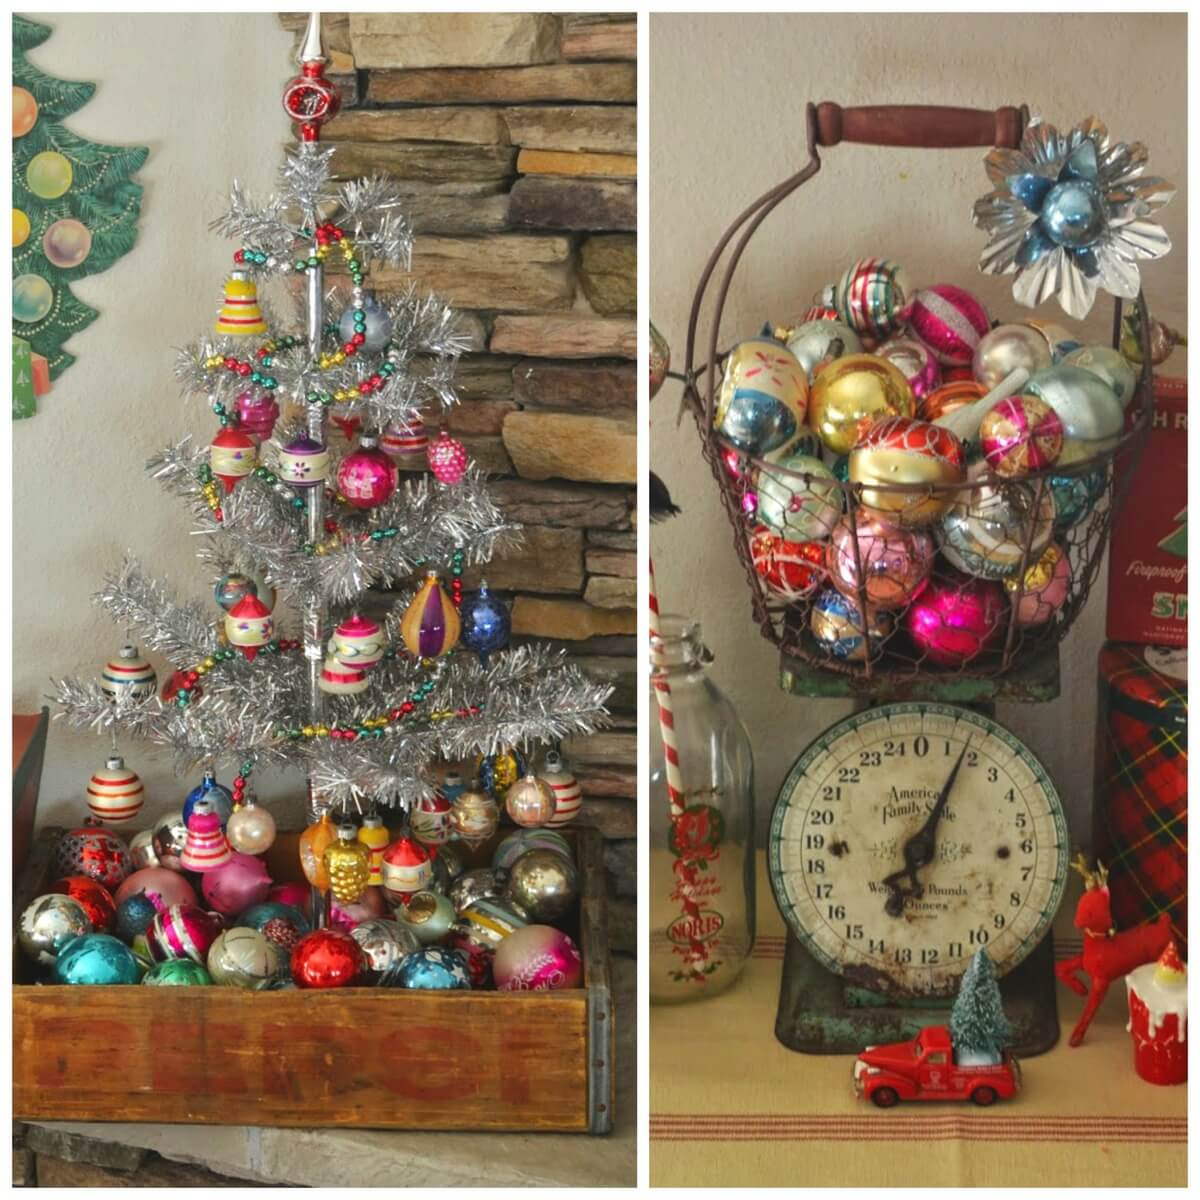 Colorful Christmas Tree Decorations.Colorful Vintage Christmas Decorations Inspiration Dig And